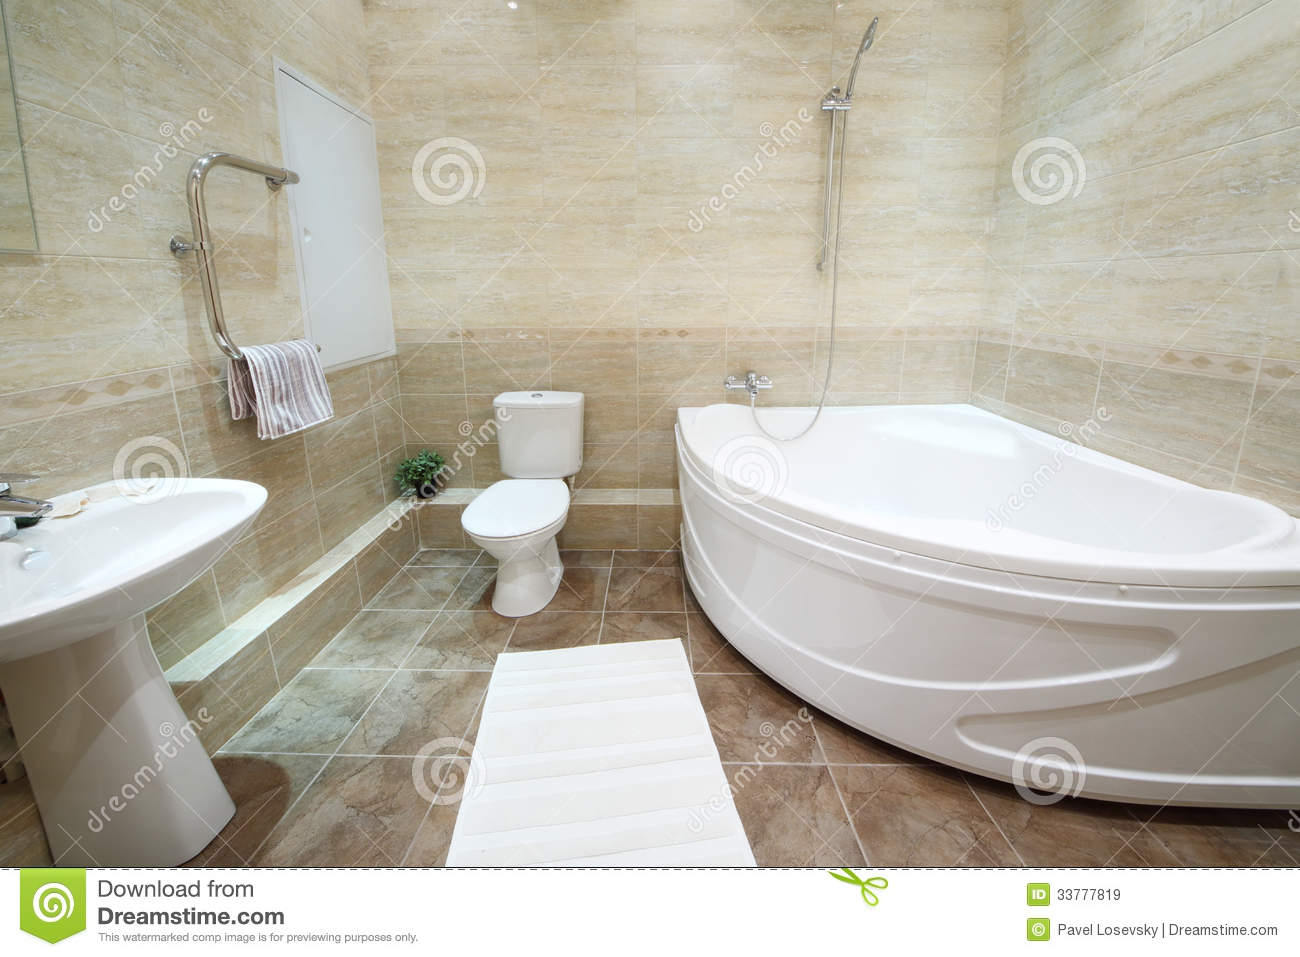 Light And Clean Bathroom With Toilet With Tiles On Floor Stock Image - Cleaning bathroom walls